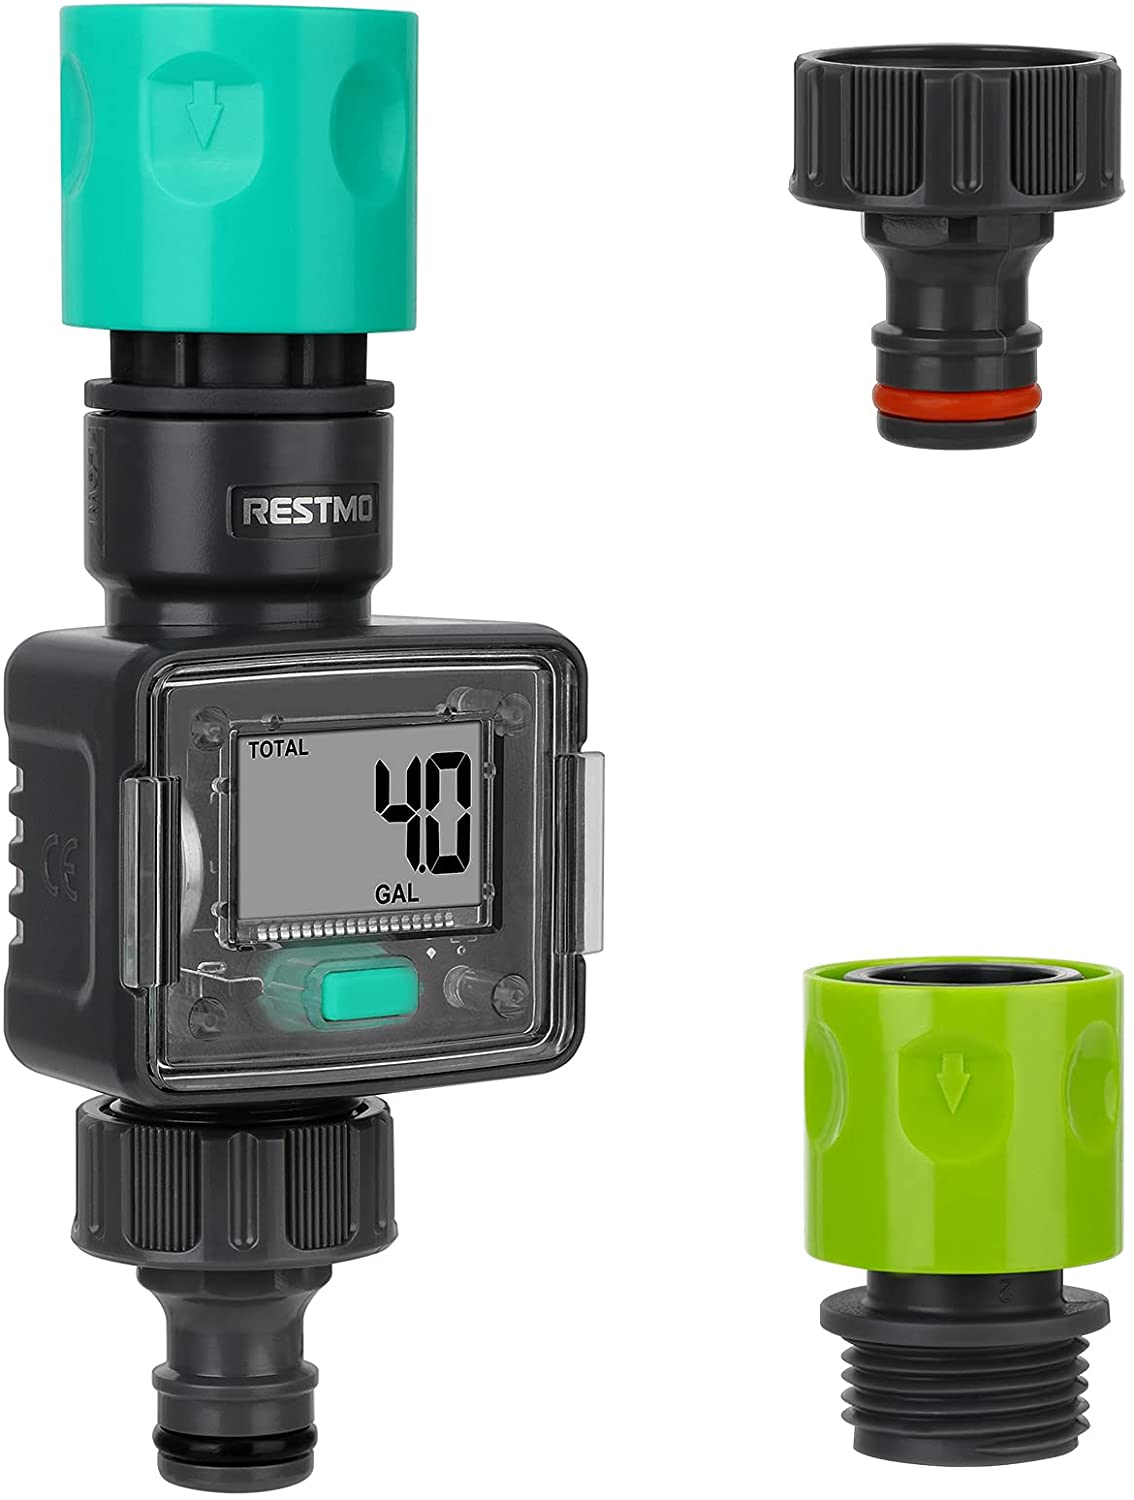 RESTMO Water Meter with Quick Connect Fittings   Digital Control   4 Measure Modes   Display Gallon/Liter Usage and Flow Rate   Ideal to Track Outdoor Garden Hose Watering